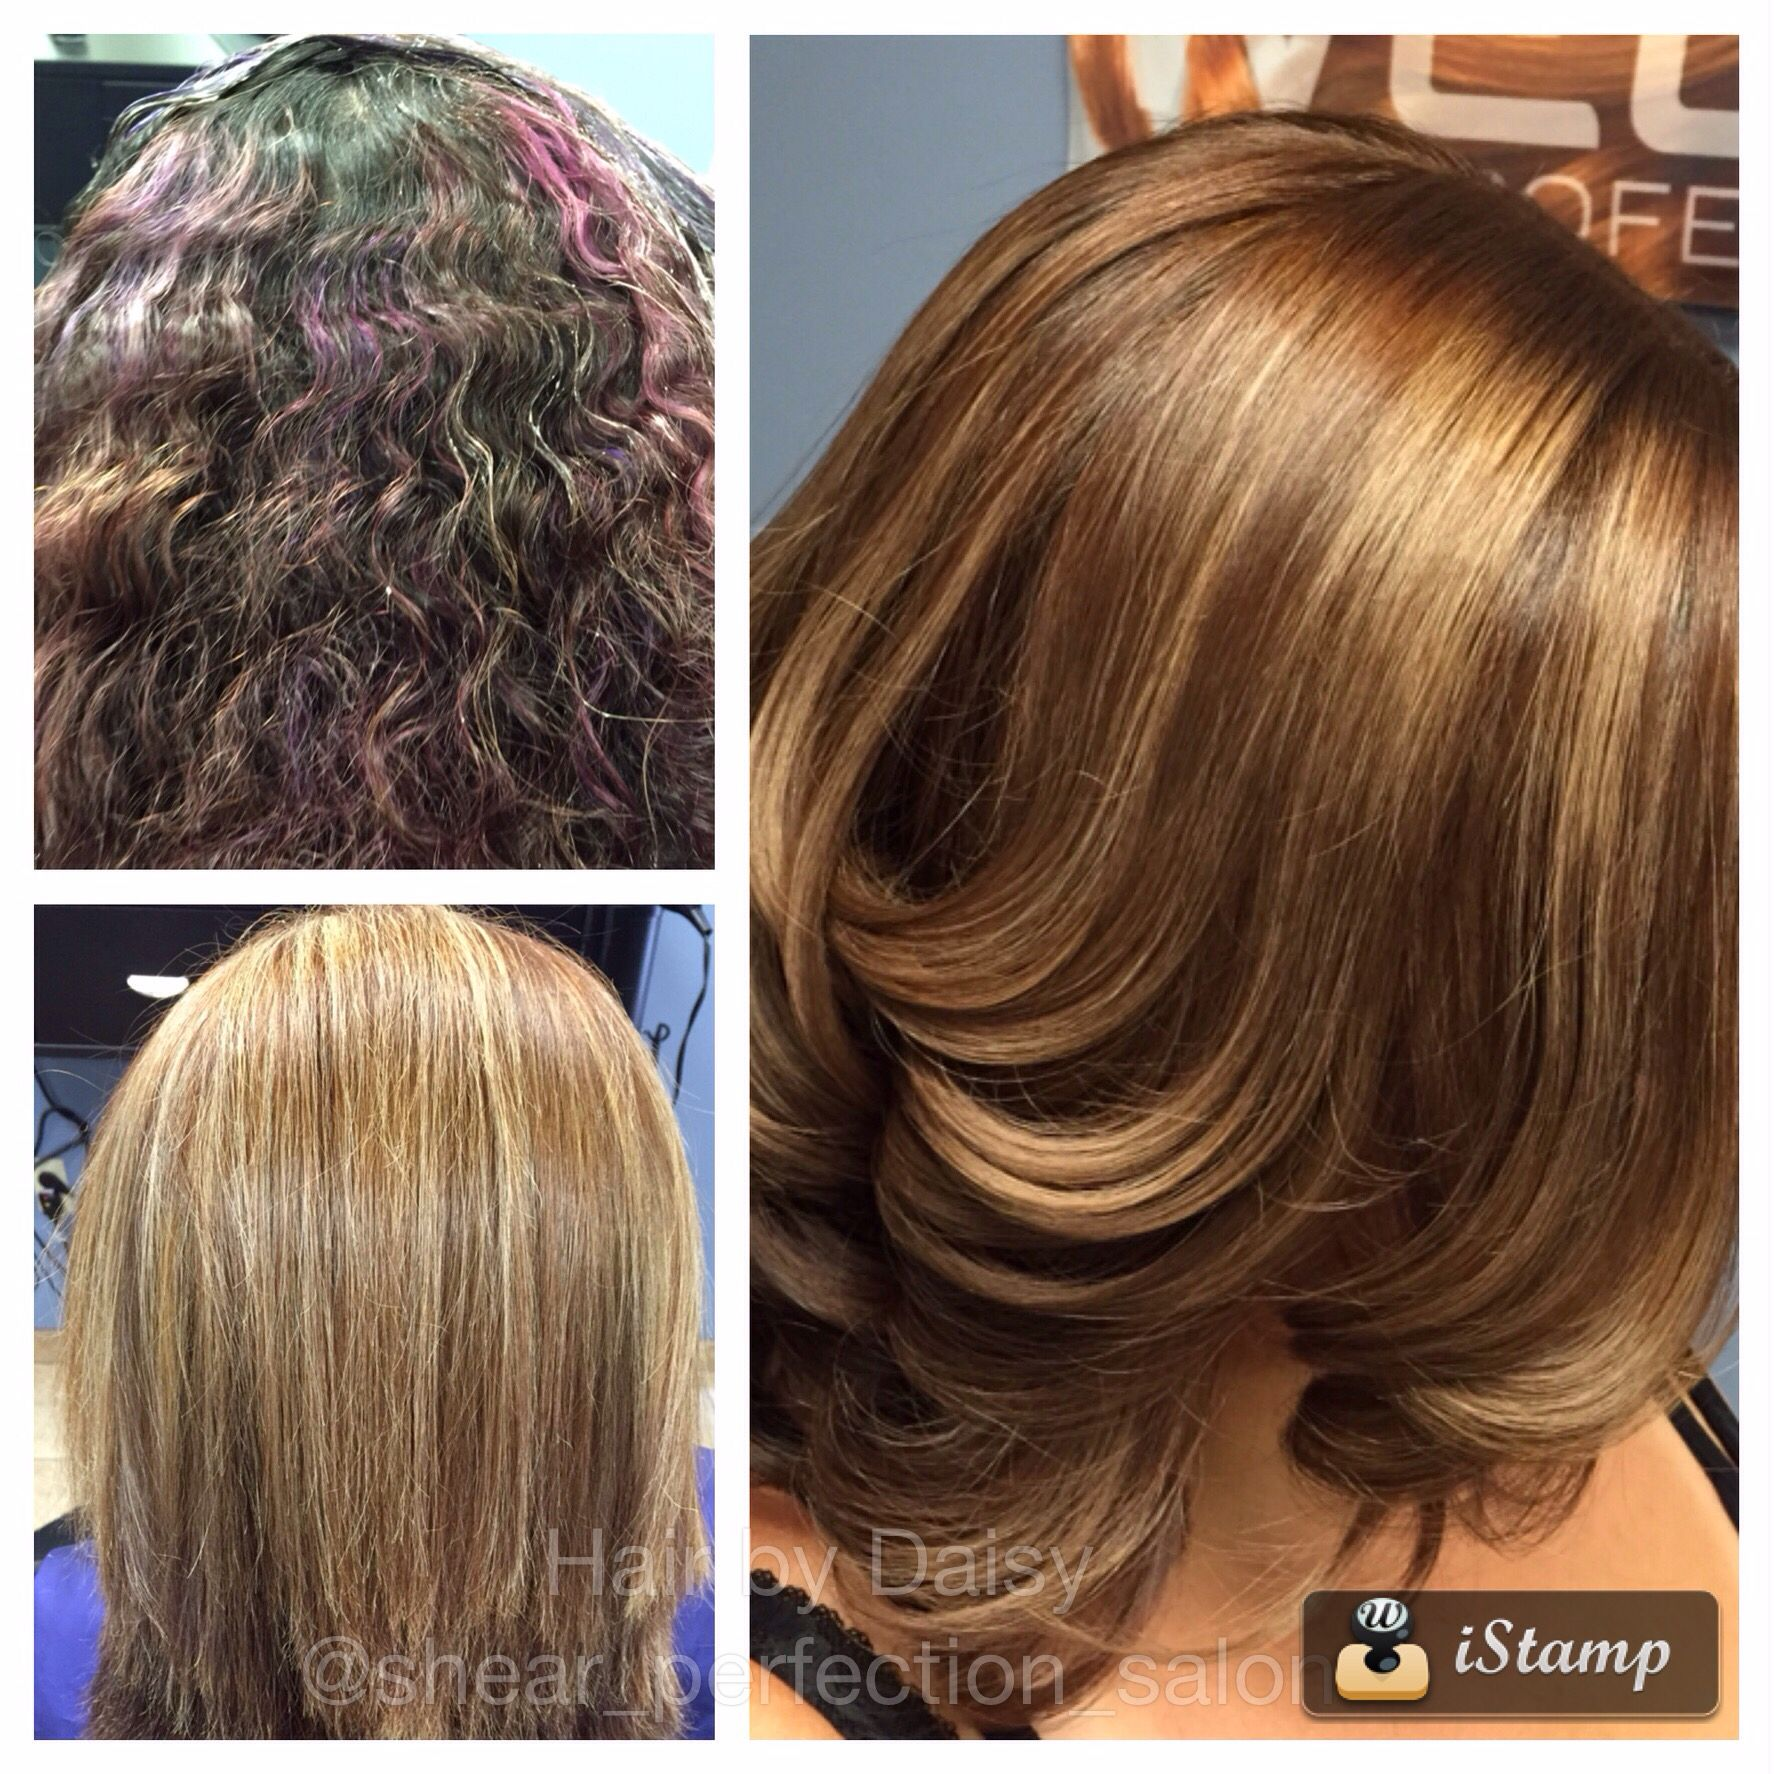 Major color correction done by Daisy at Shear Perfection Salon in ...